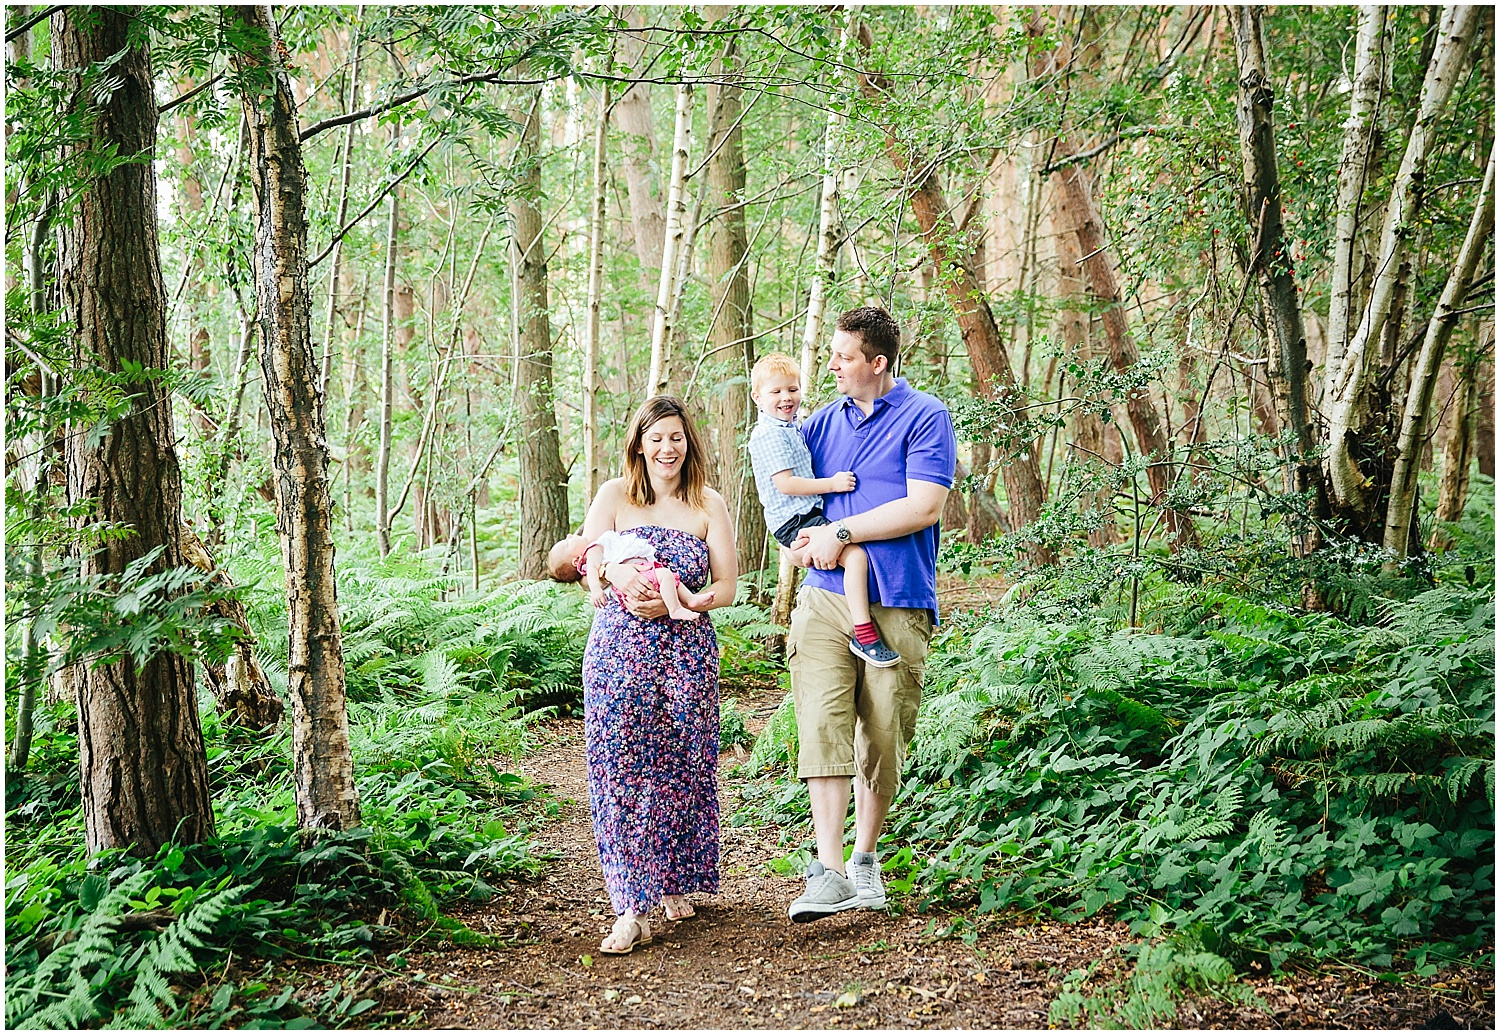 family walking in woods ashford kent photographer